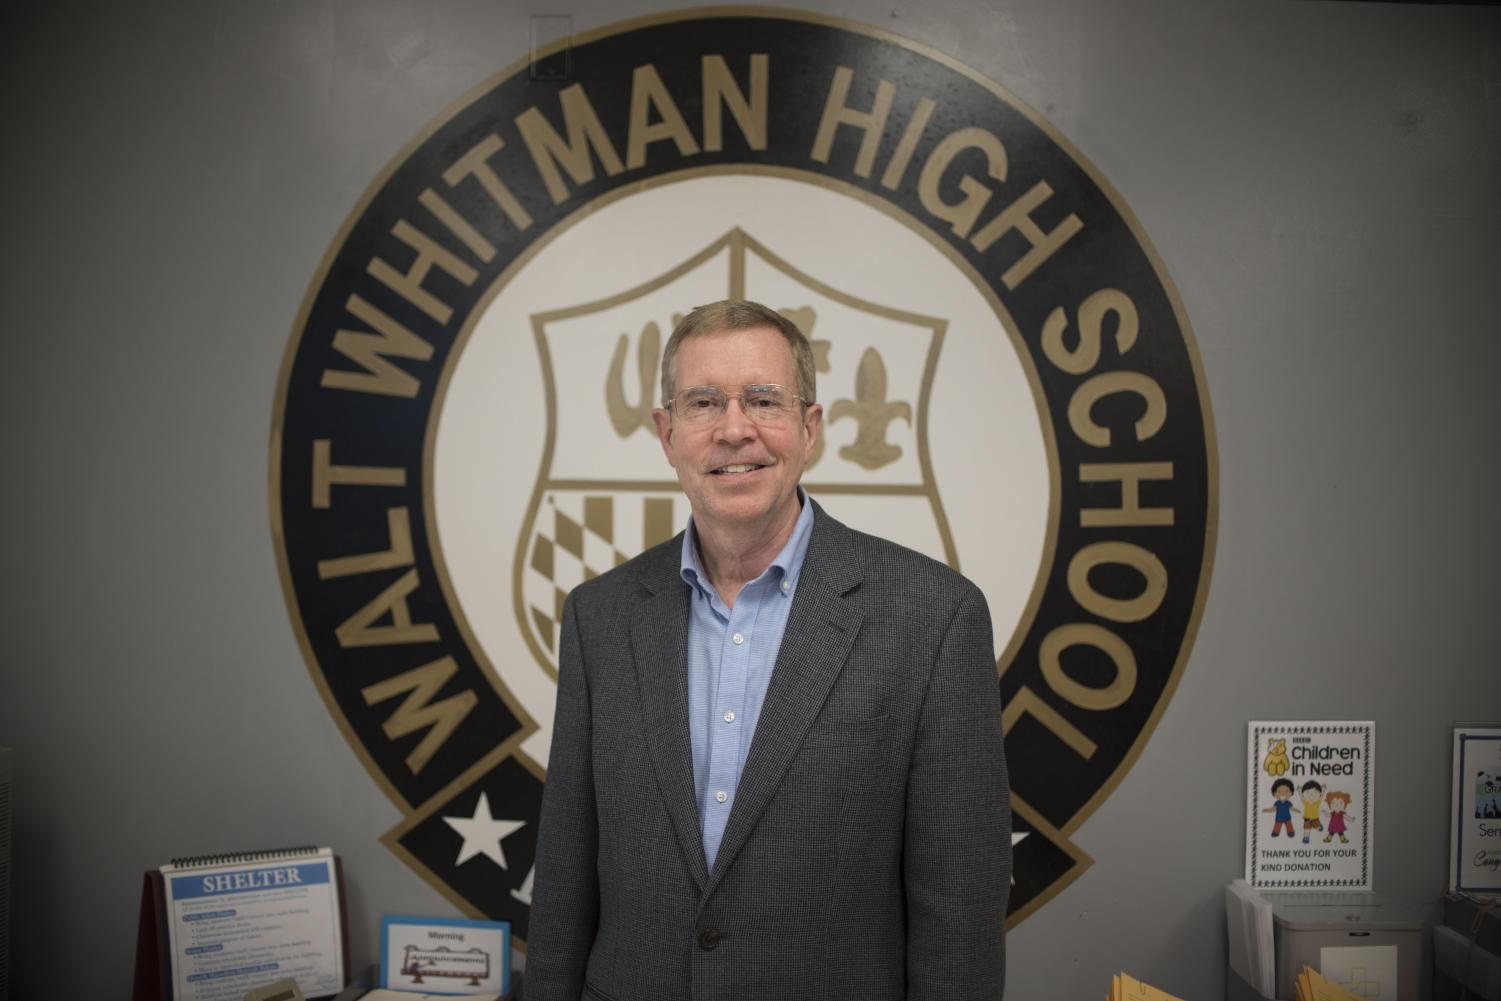 Principal Alan Goodwin is set to retire at the end of the school year. Photo by Annabelle Gordon.